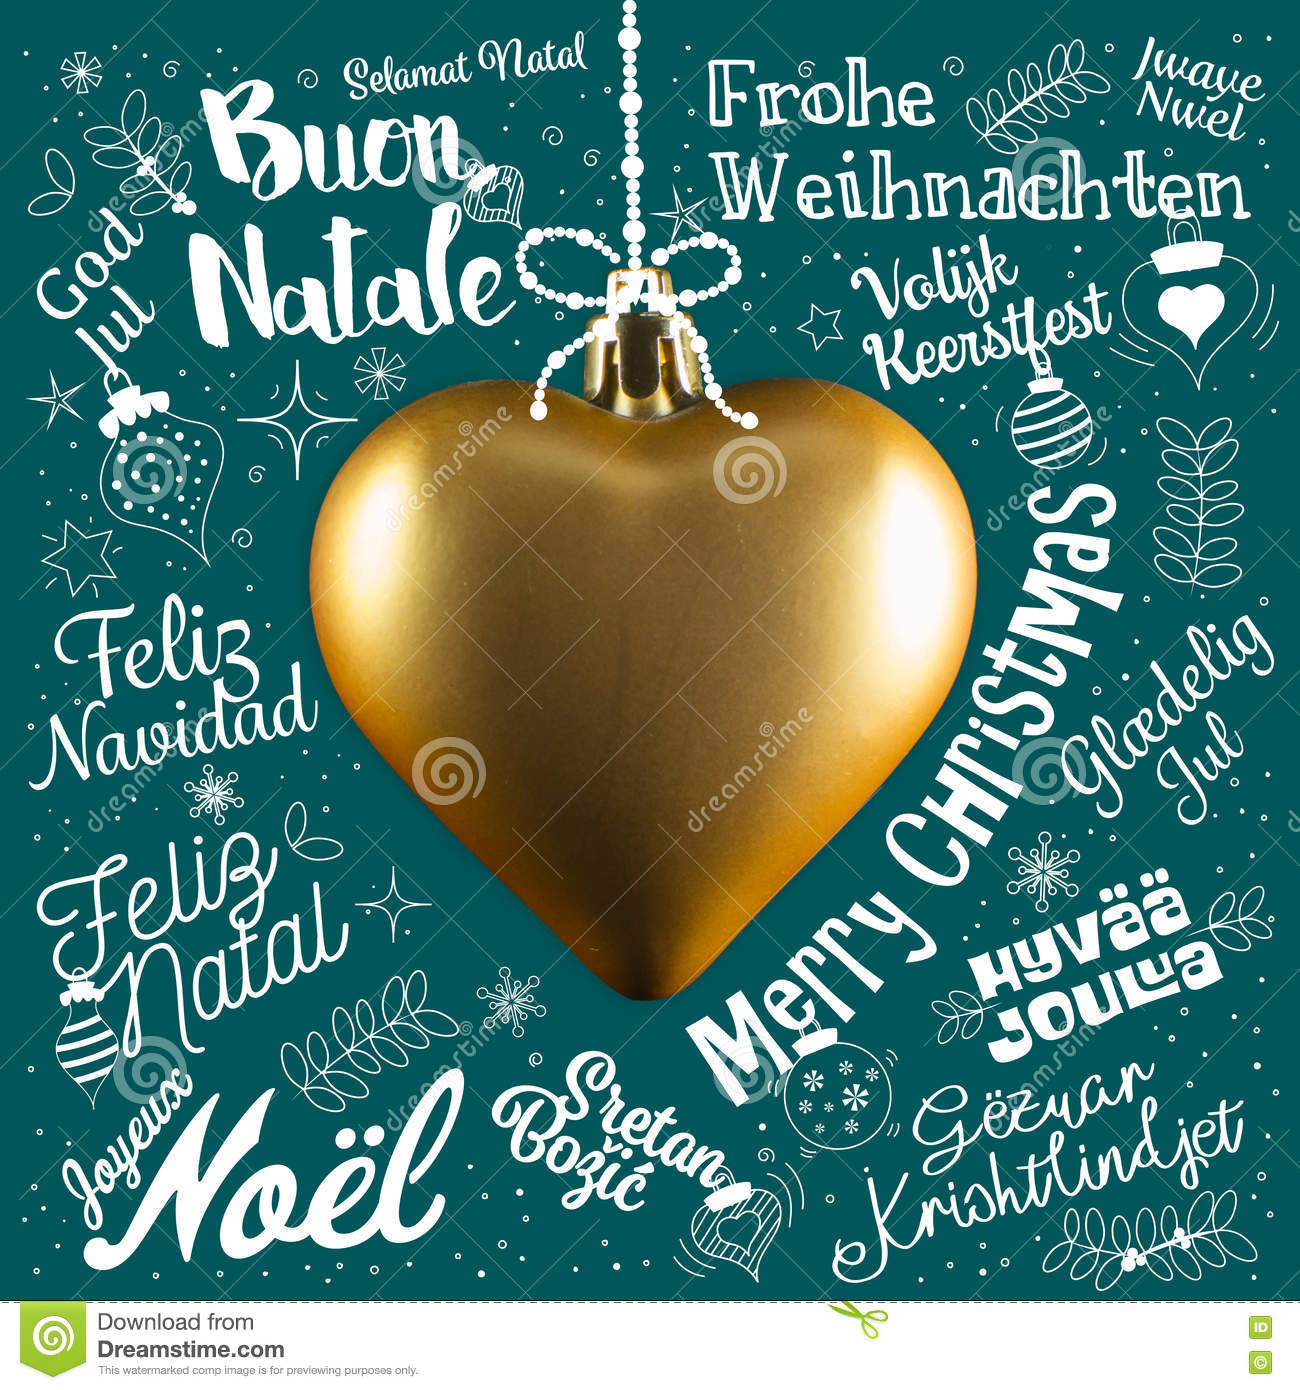 Merry christmas greetings card from world in different languages merry christmas greetings card from world in different languages italian letter kristyandbryce Images